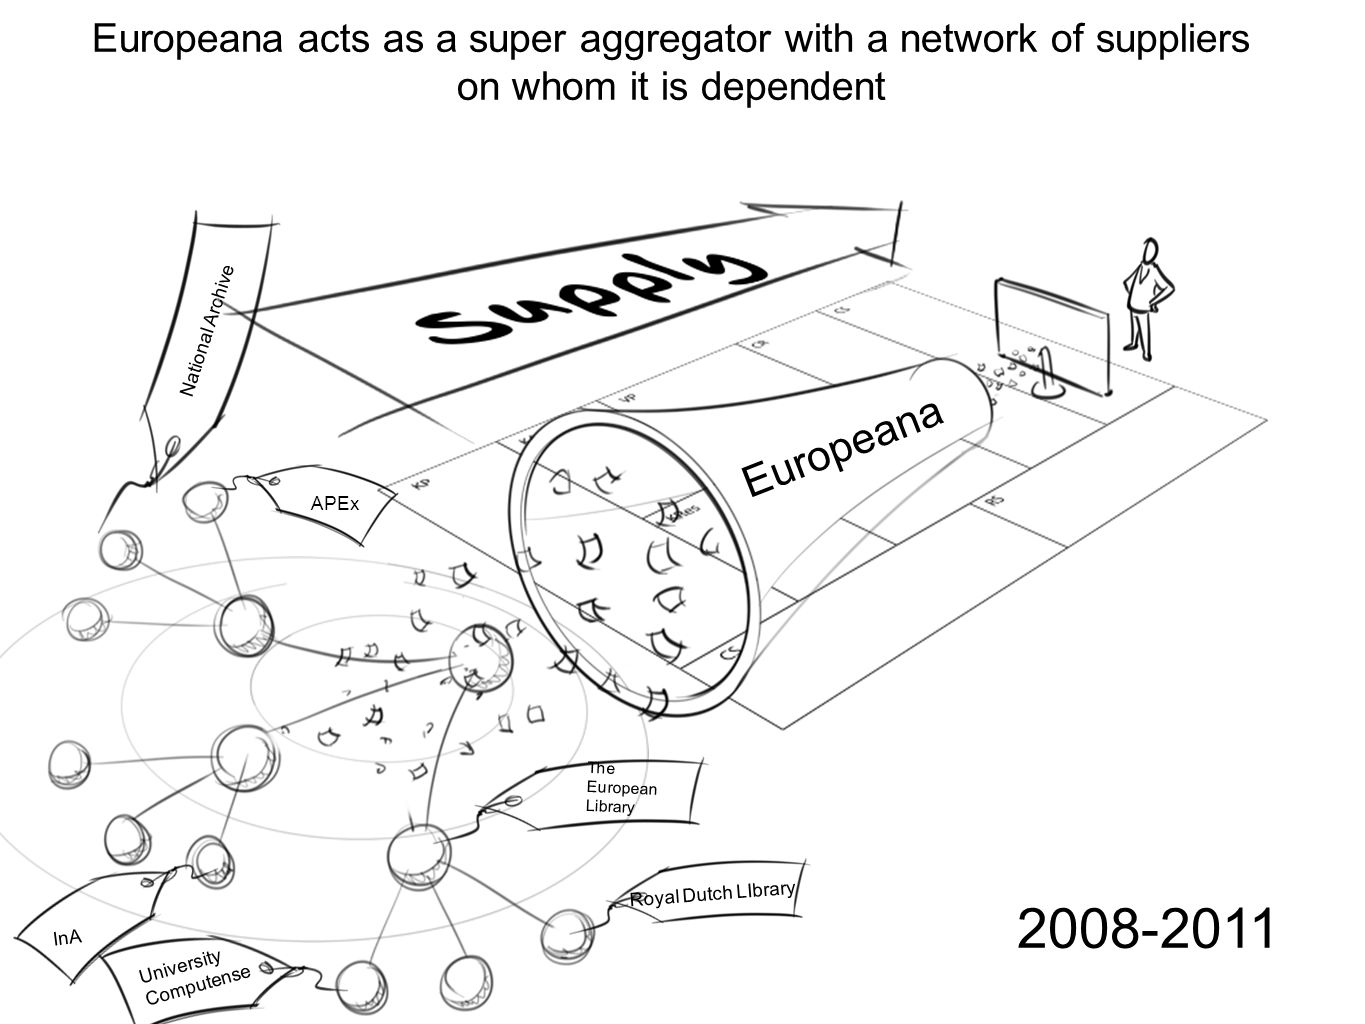 APEx Europeana InA University Computense The European Library Royal Dutch LIbrary National Archive 2008-2011 Europeana acts as a super aggregator with